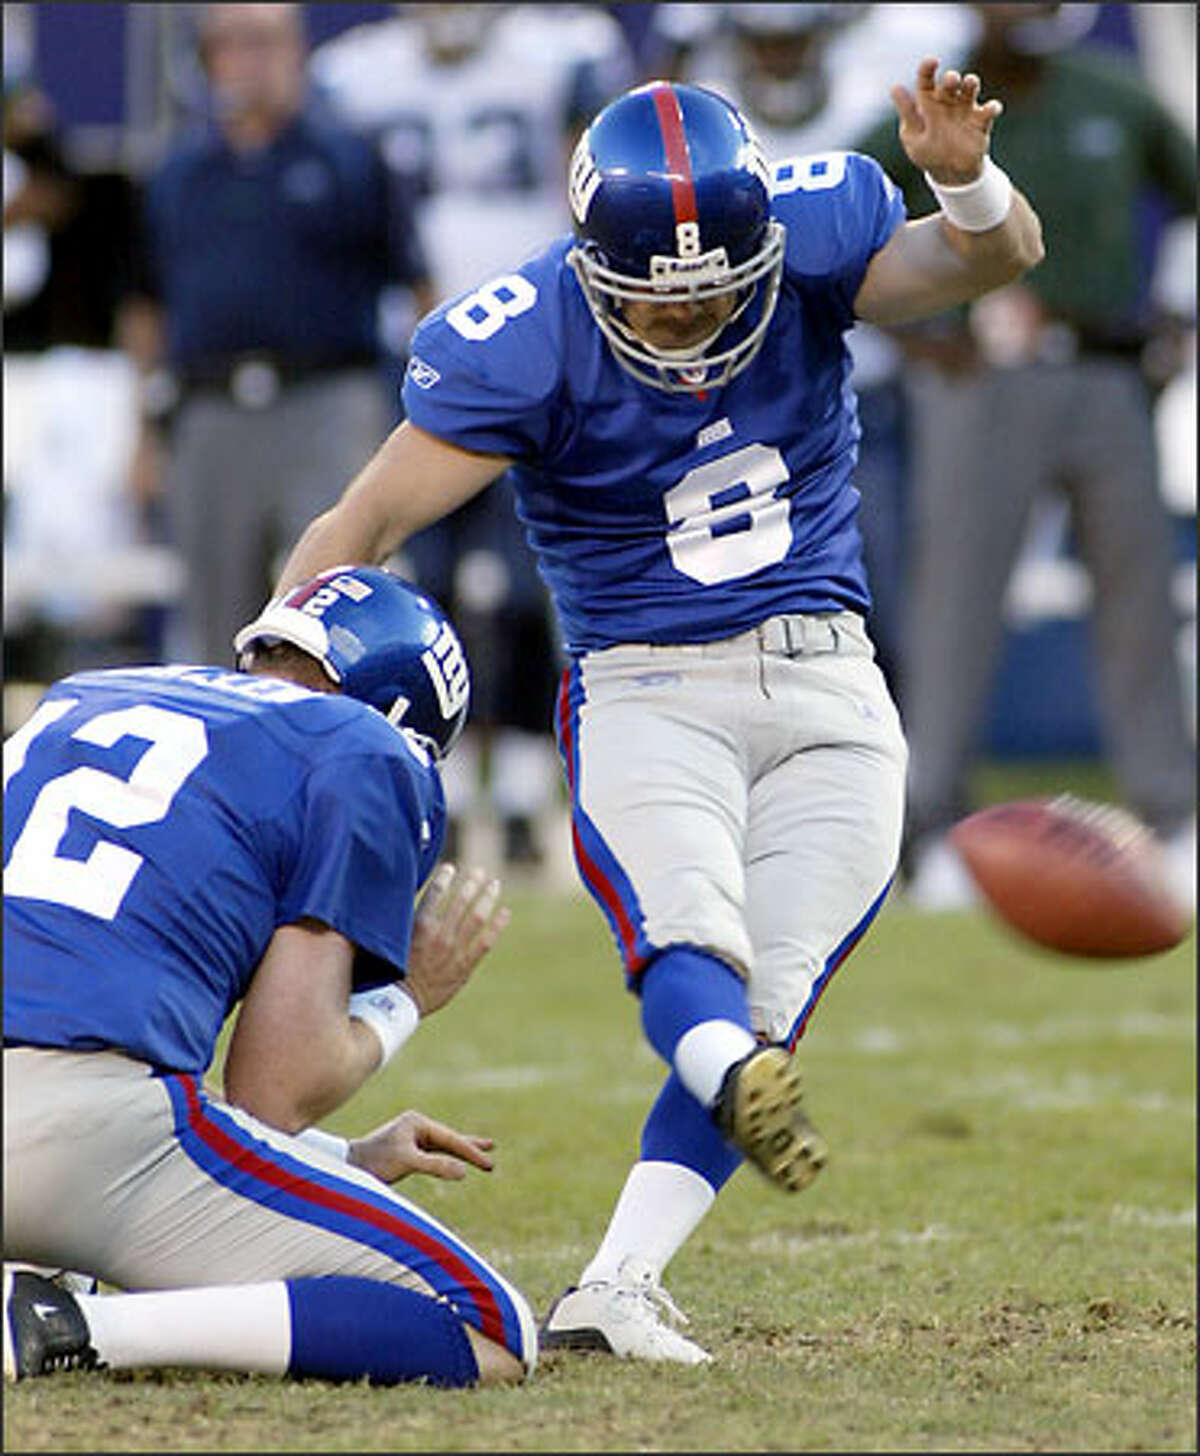 The Giants' Matt Bryant boots one of his three field goals, in the third quarter, for New York's lone points.